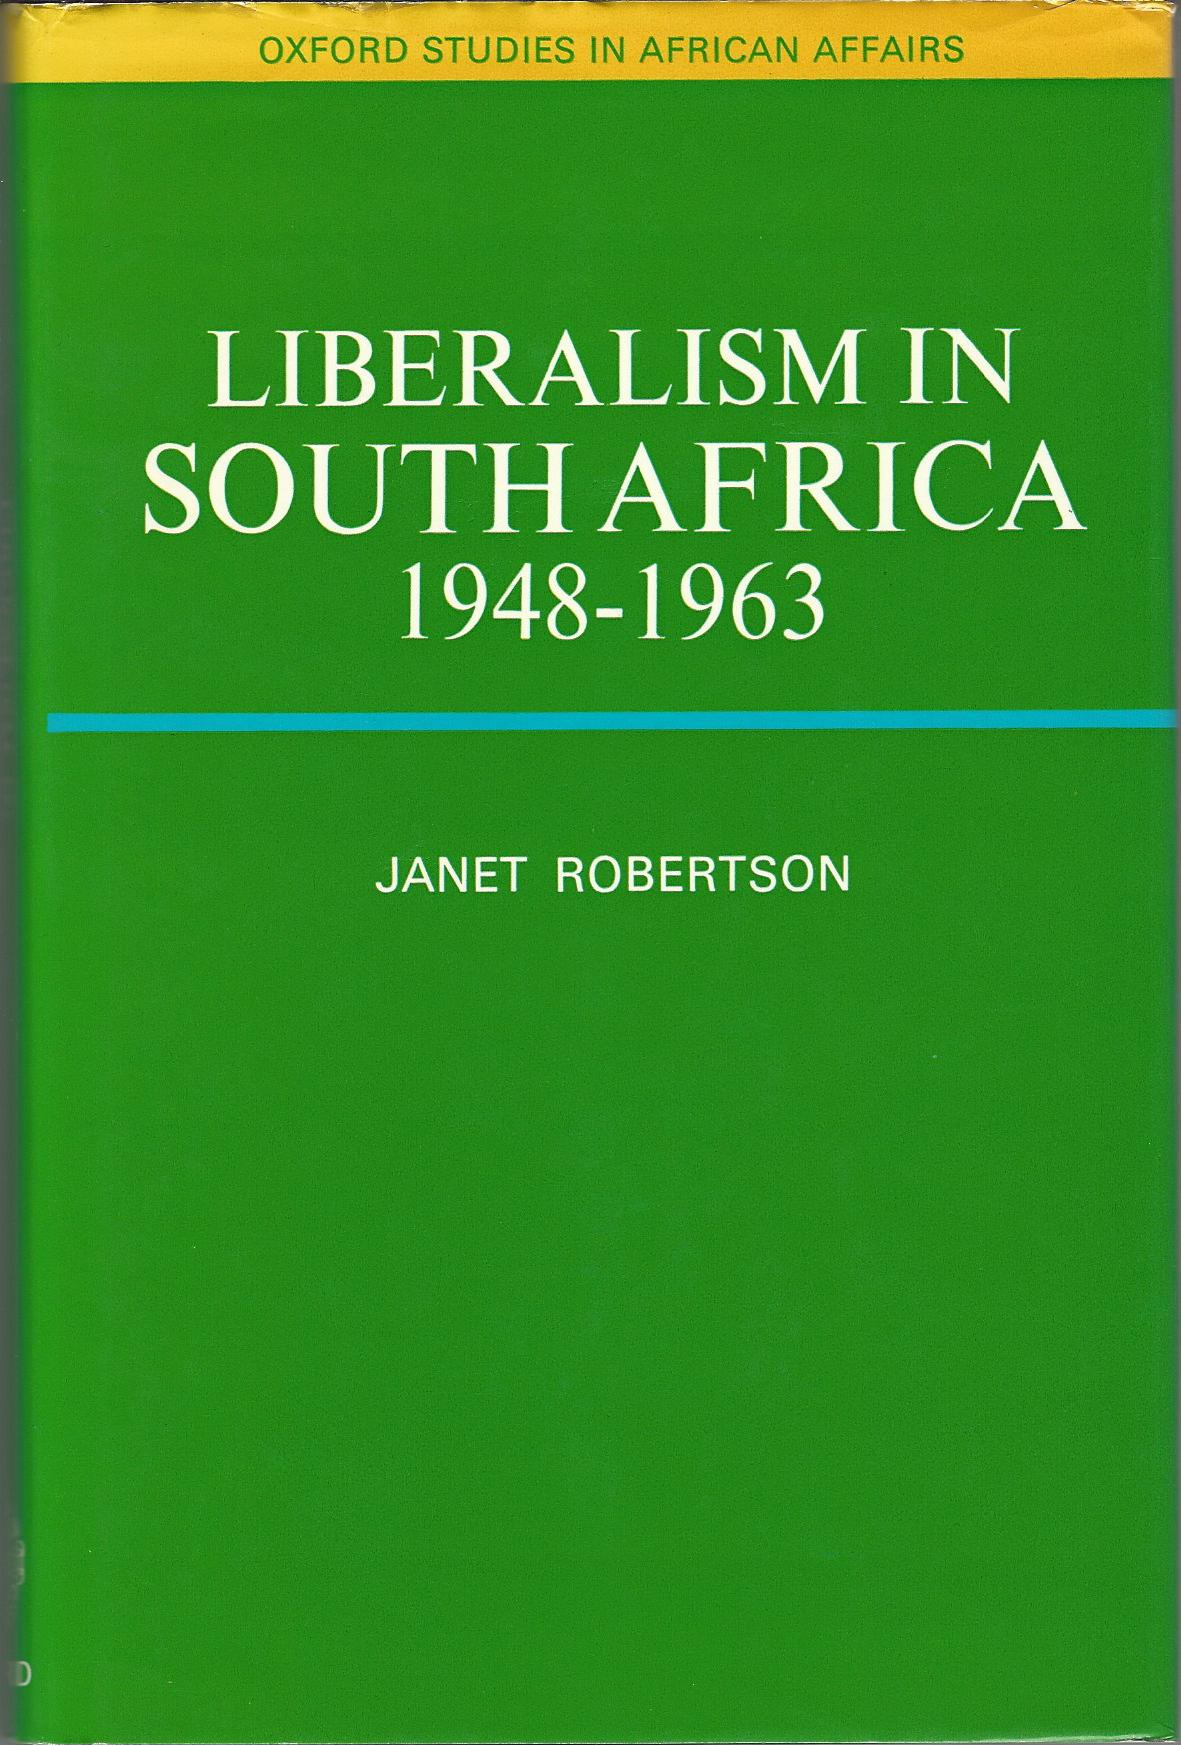 Image for Liberalism in South Africa, 1948-63 (Oxford studies in African affairs)